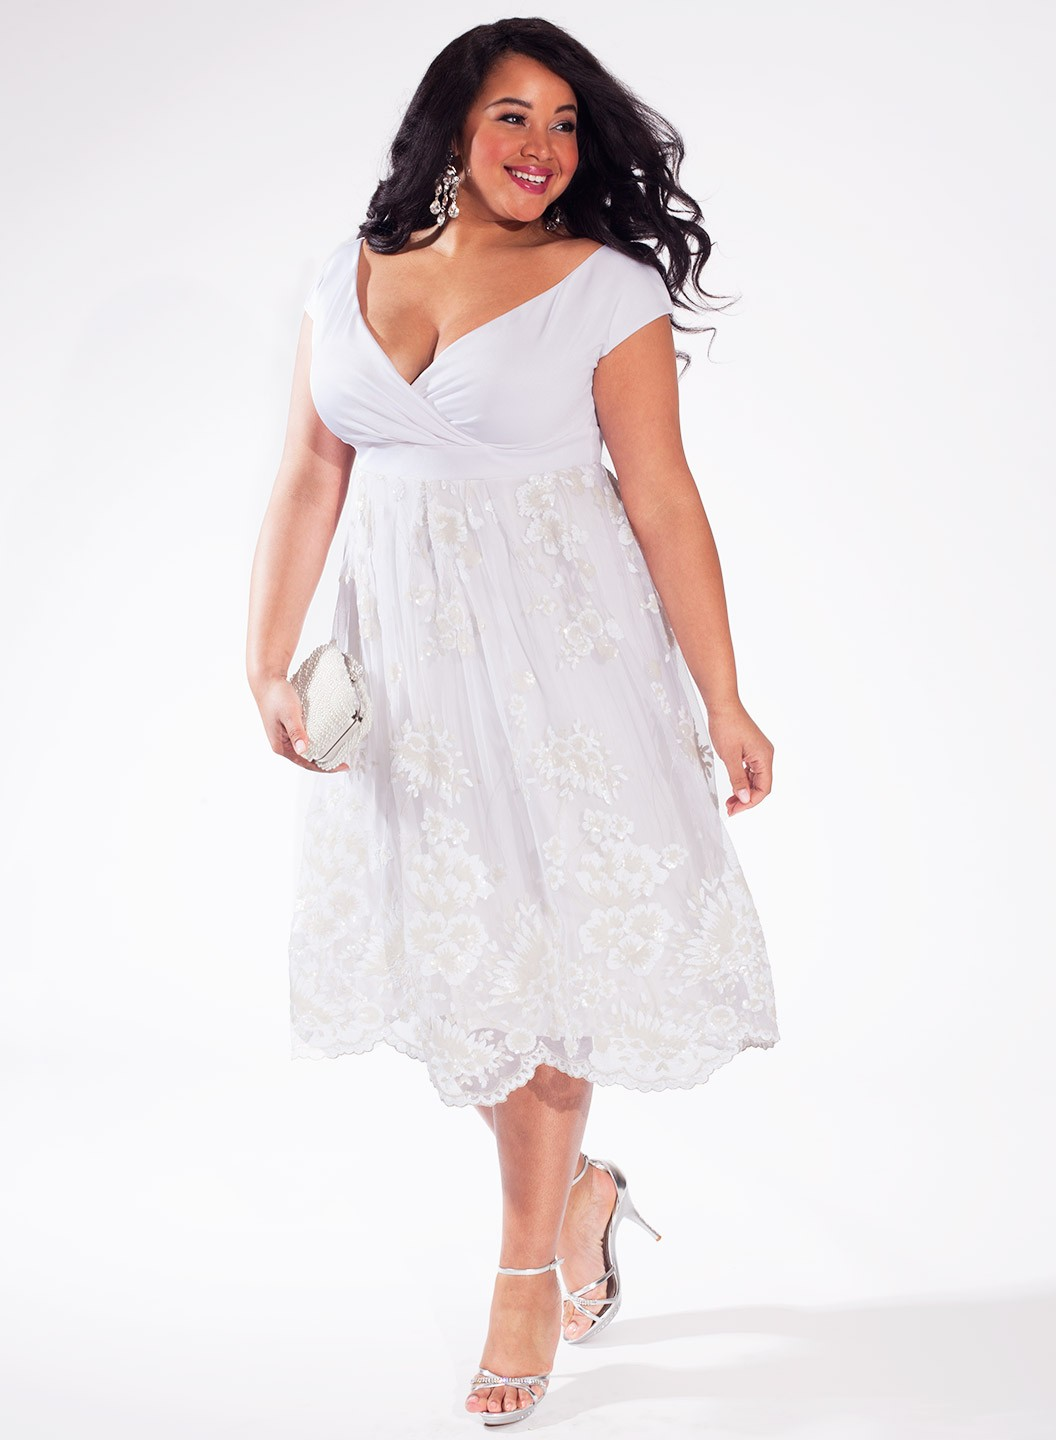 Halter top wedding dresses plus size - SandiegoTowingca.com